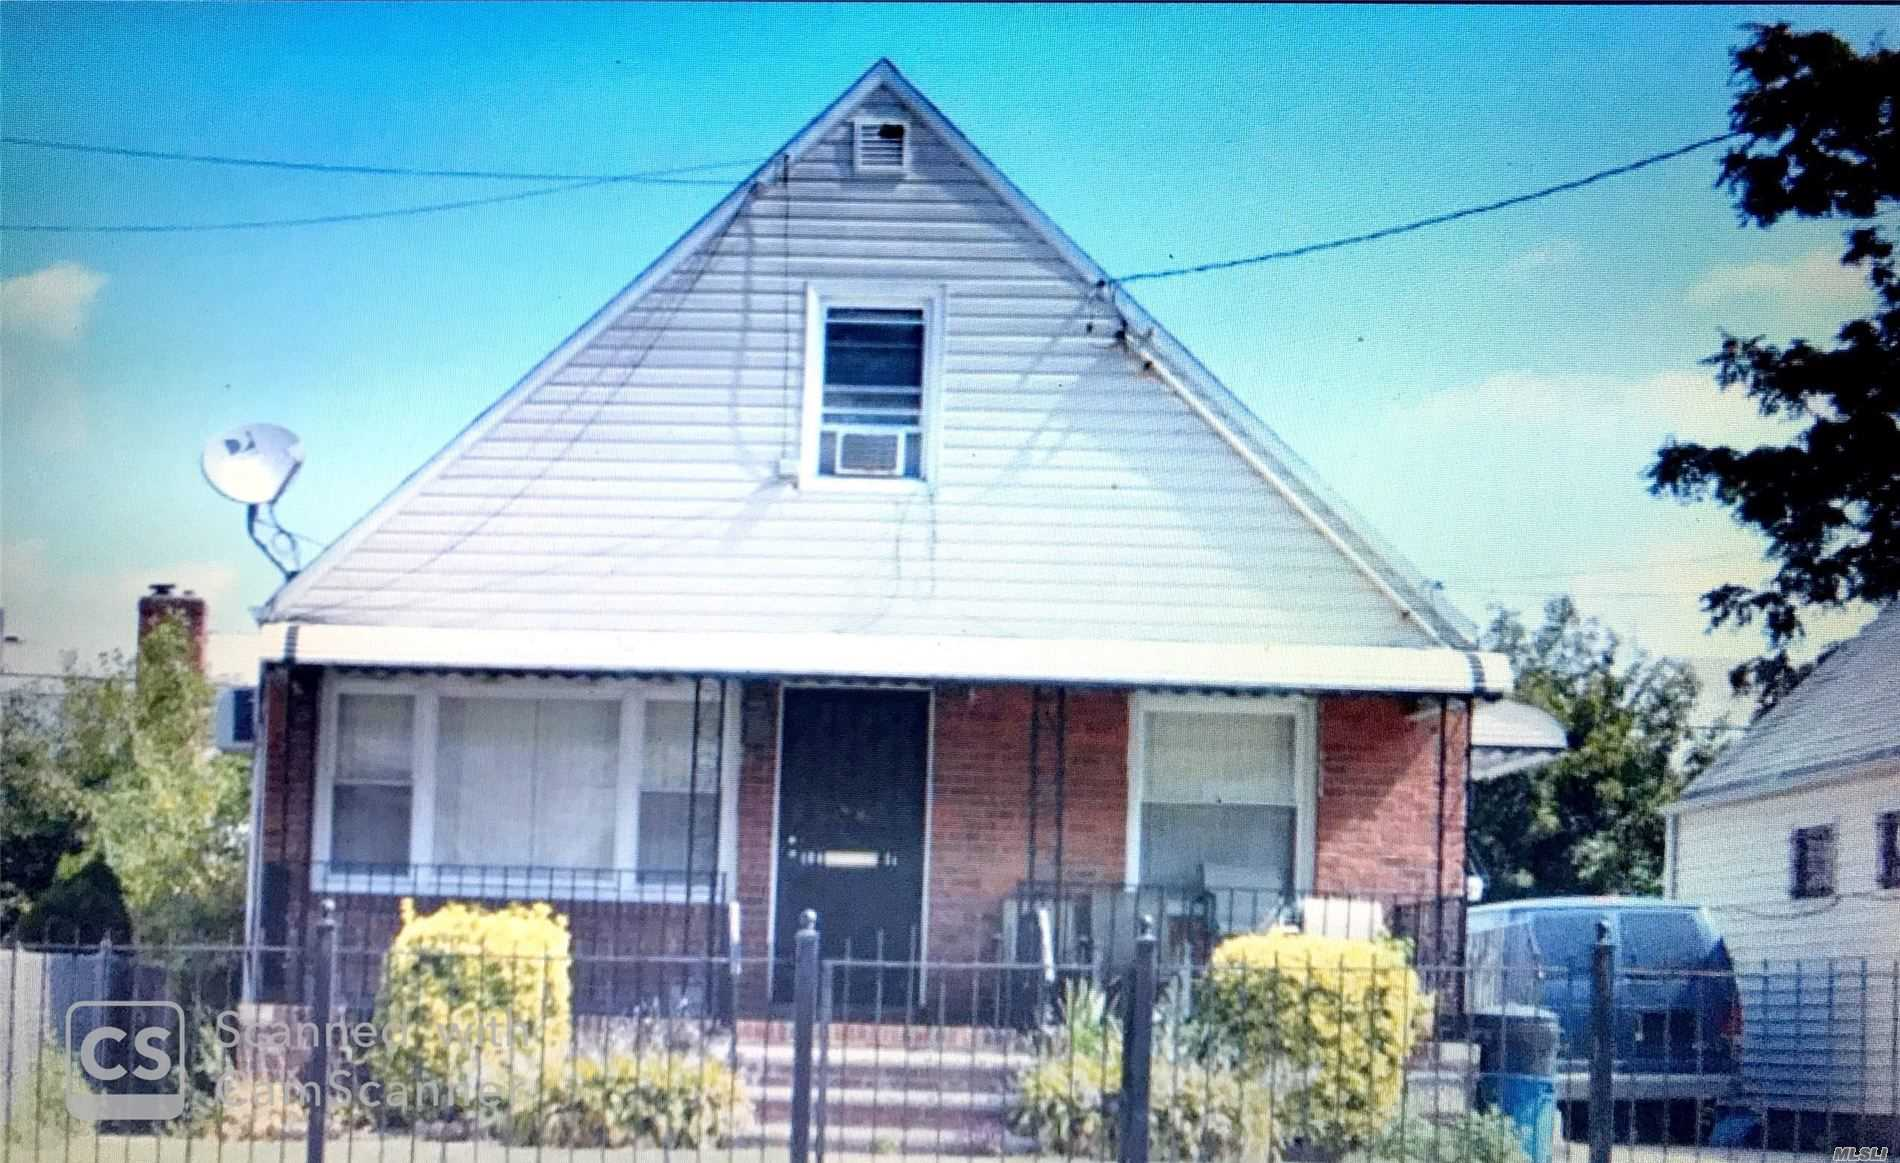 Property for sale at 109-17 176St, Jamaica NY 11423, Jamaica,  New York 11423